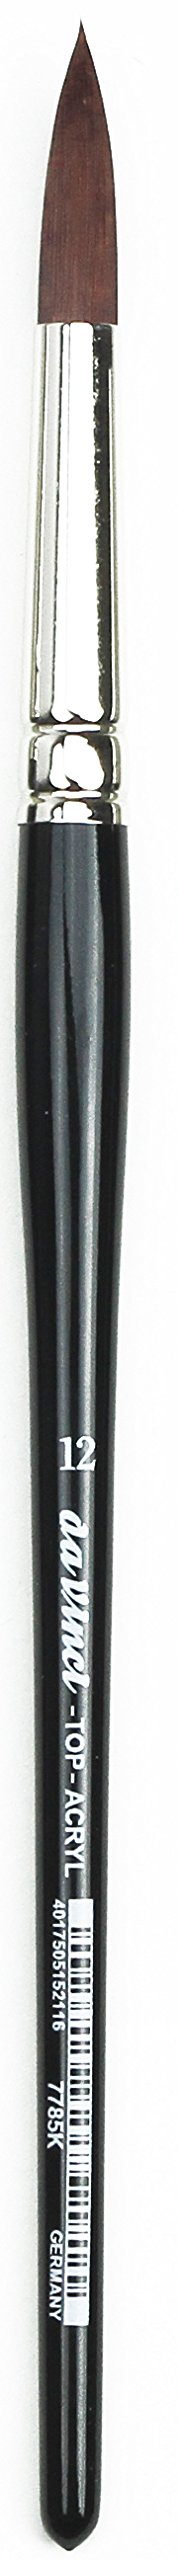 da Vinci Oil & Acrylic Series 7785K Top Acryl Paint Brush, Round Red/Brown Synthetic with Short Black Handle, Size 12